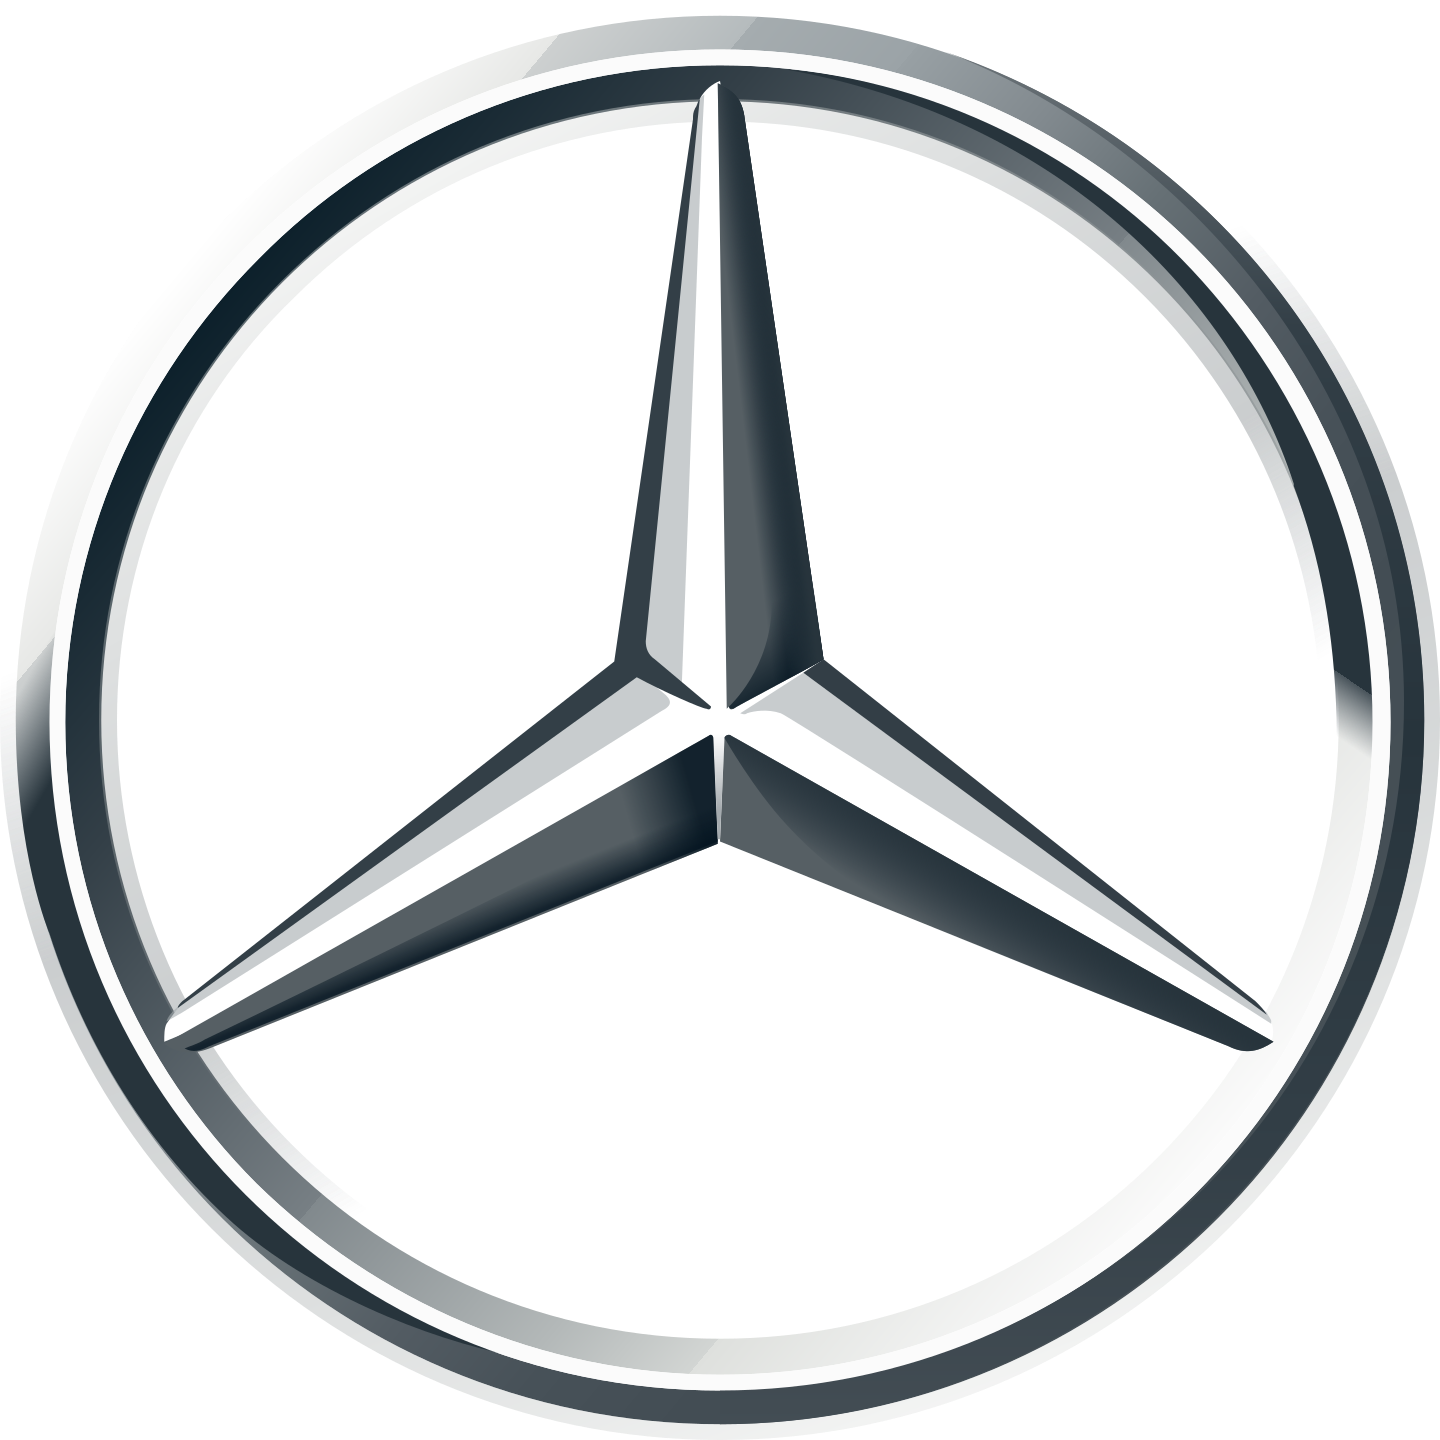 mercedes benz logo 2 1 - Mercedes Benz Logo